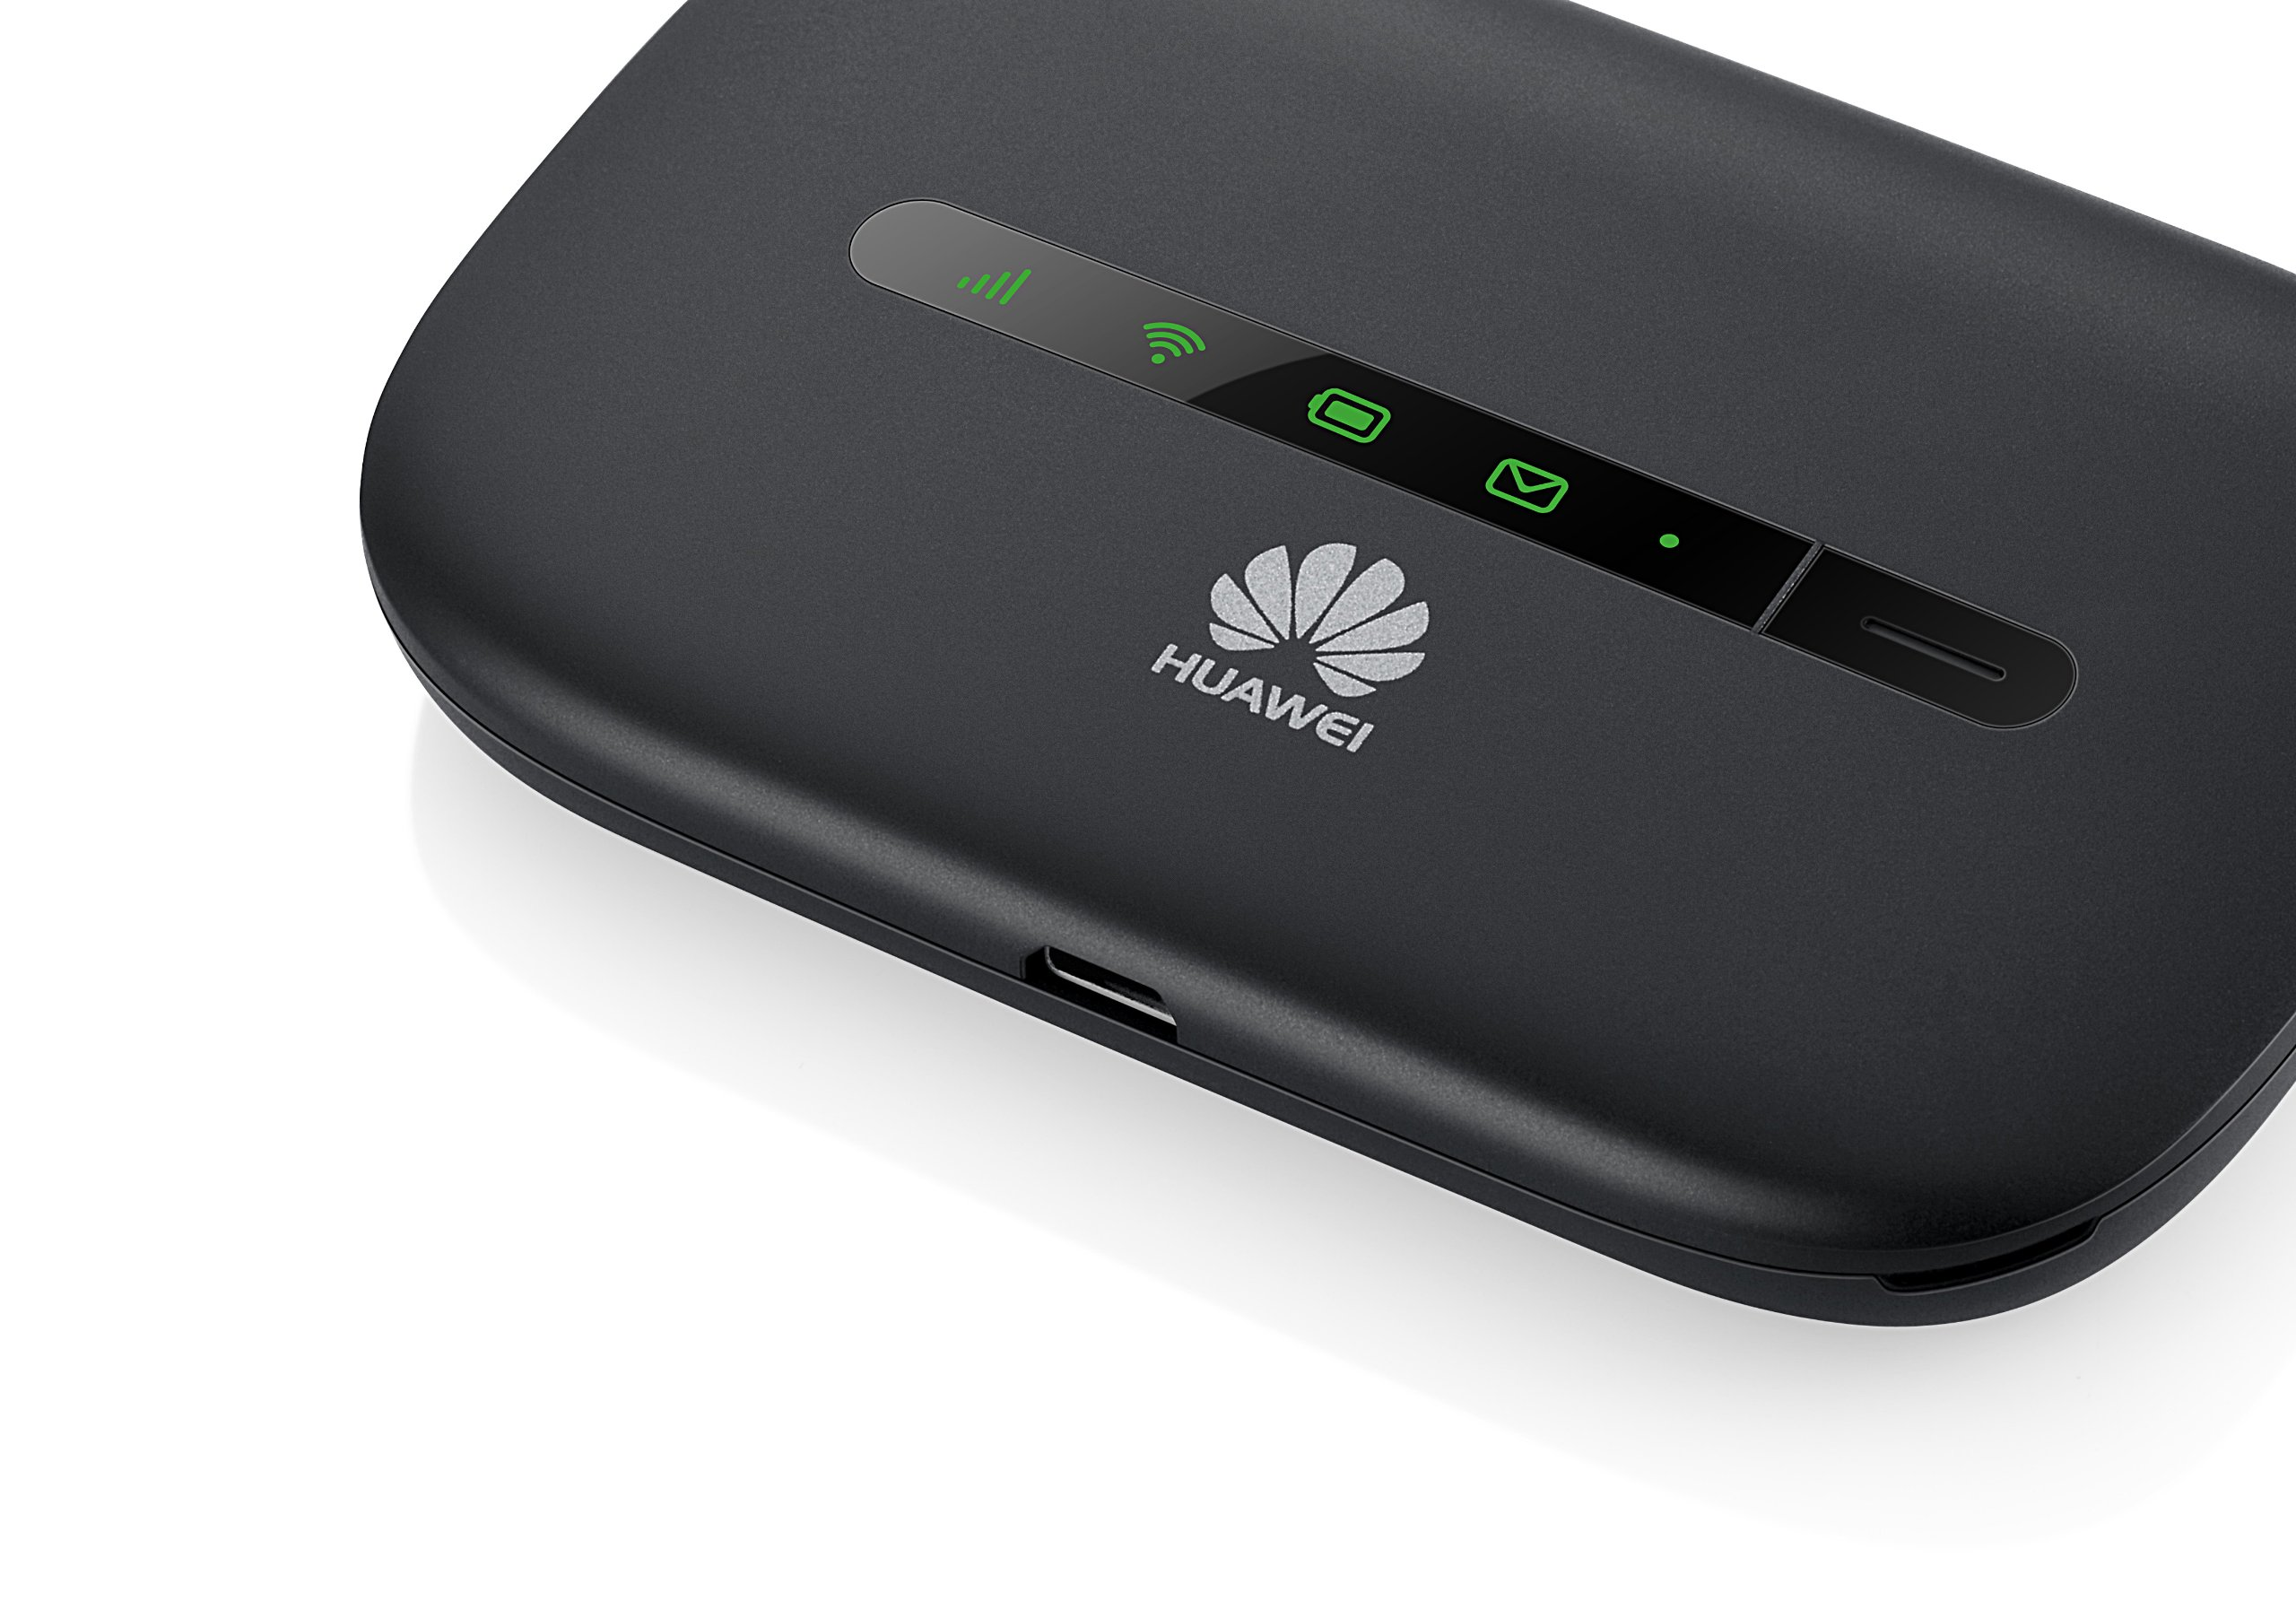 Huawei E5330Bs-2 21 Mbps 3G Mobile WiFi Hotspot (3G in Europe, Asia, Middle East & Africa) (black) by Huawei (Image #4)